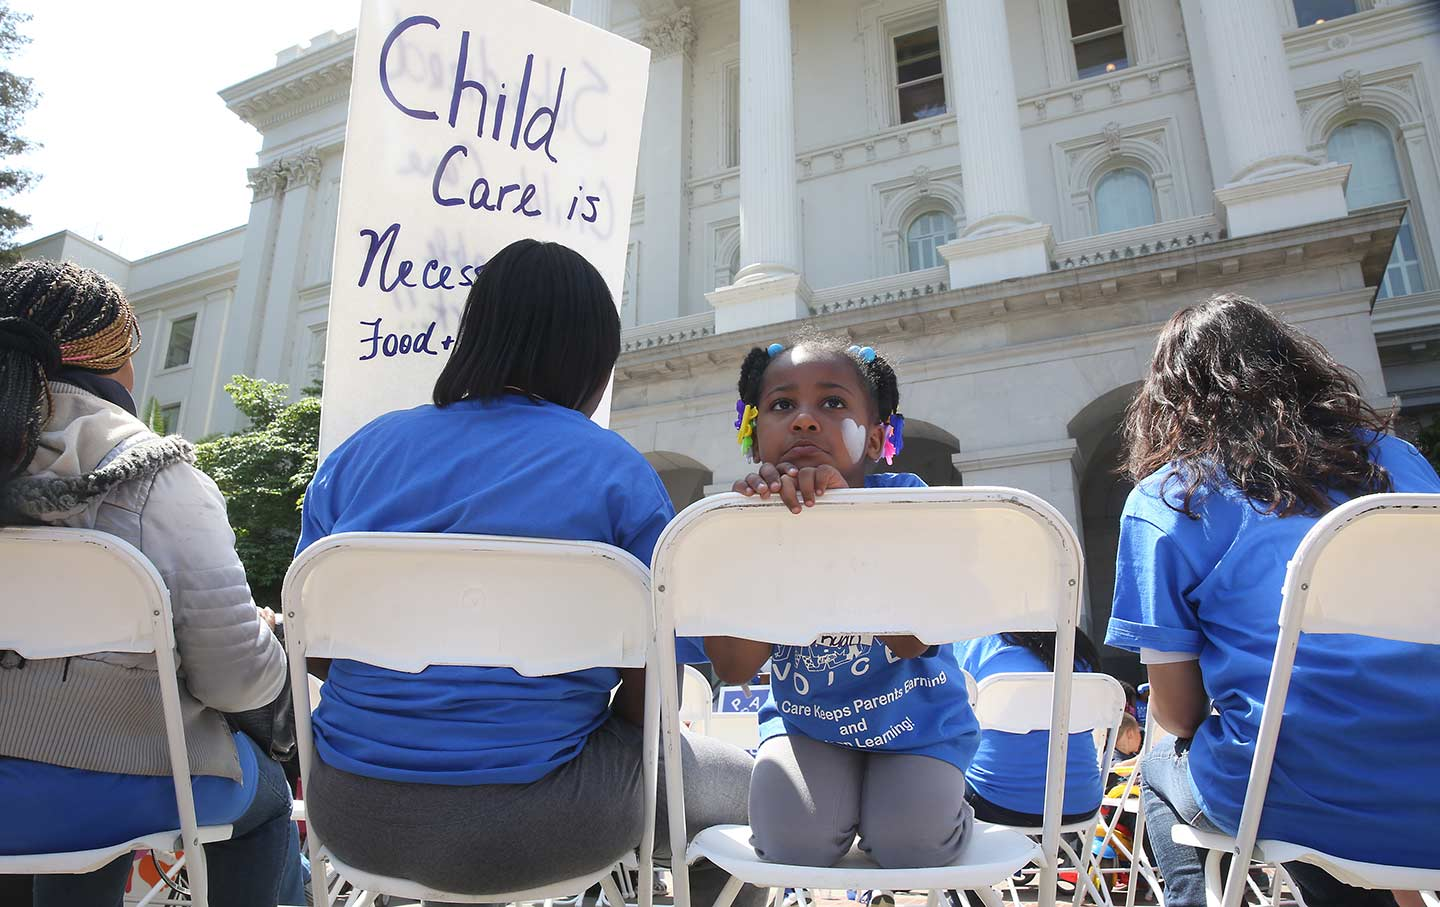 https://www.thenation.com/wp-content/uploads/2018/02/child-care-rally-sacramento-ap-img.jpg?scale=896&compress=80